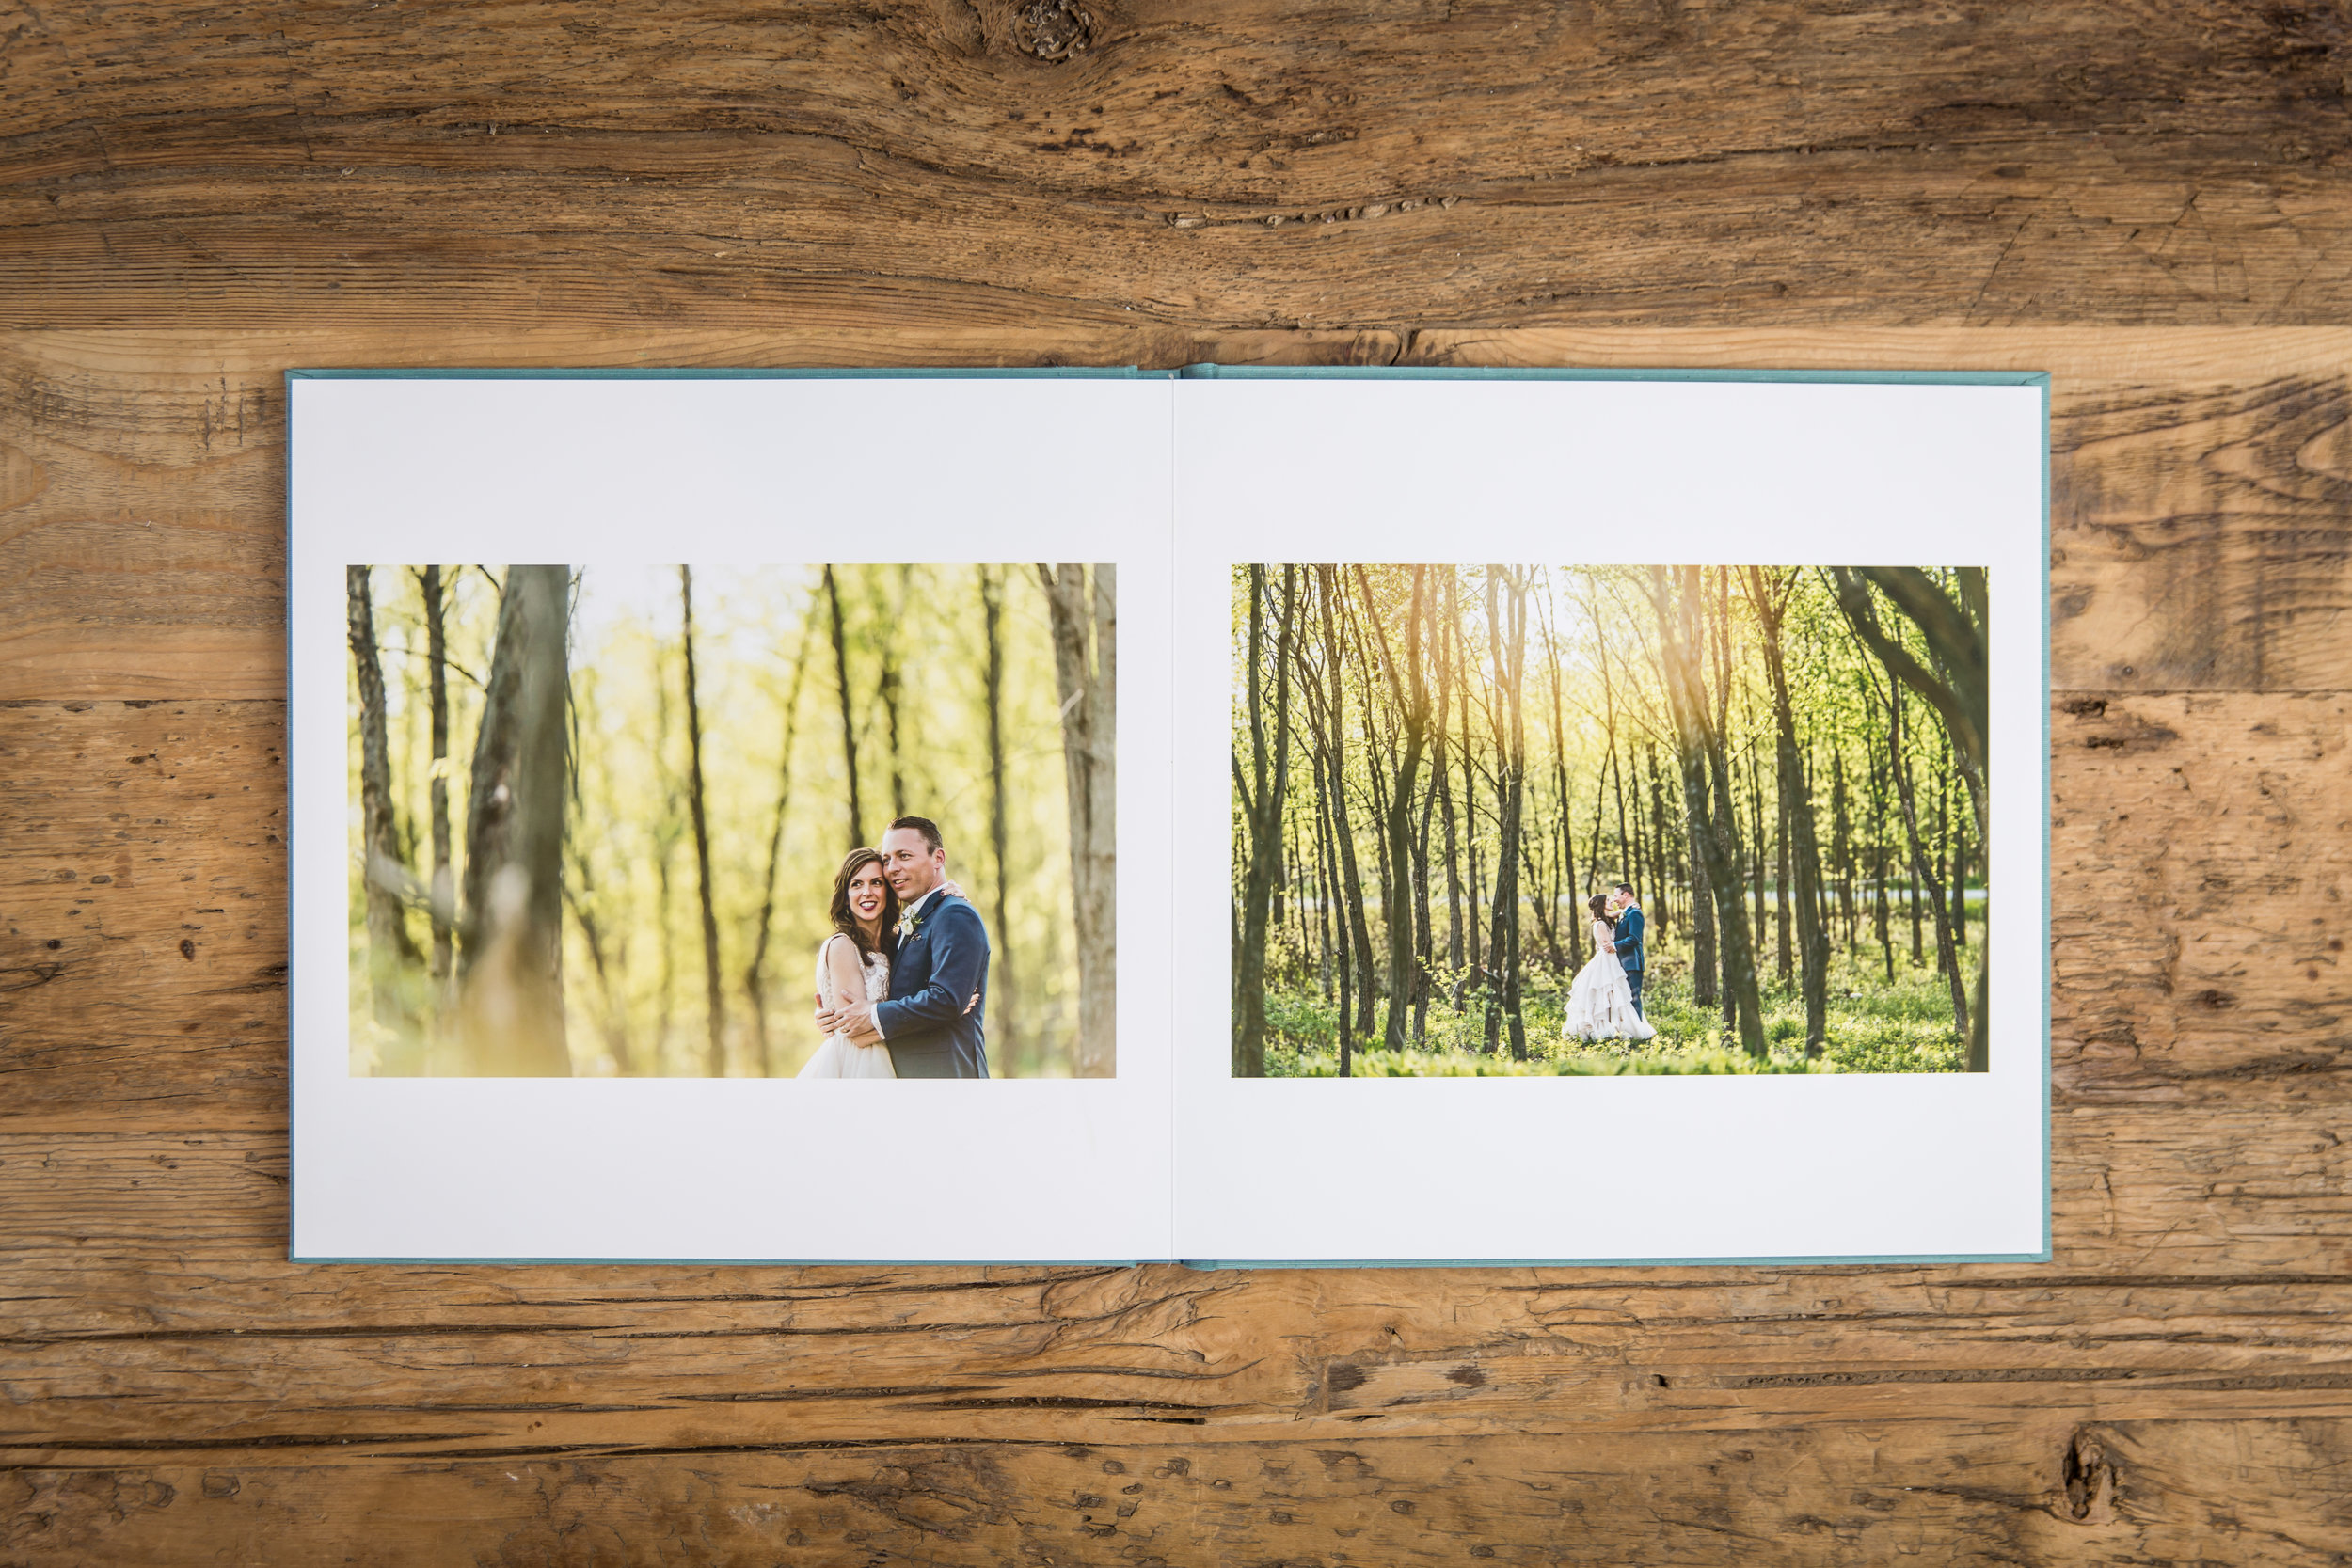 an example photograph or a wedding album on a wooden table